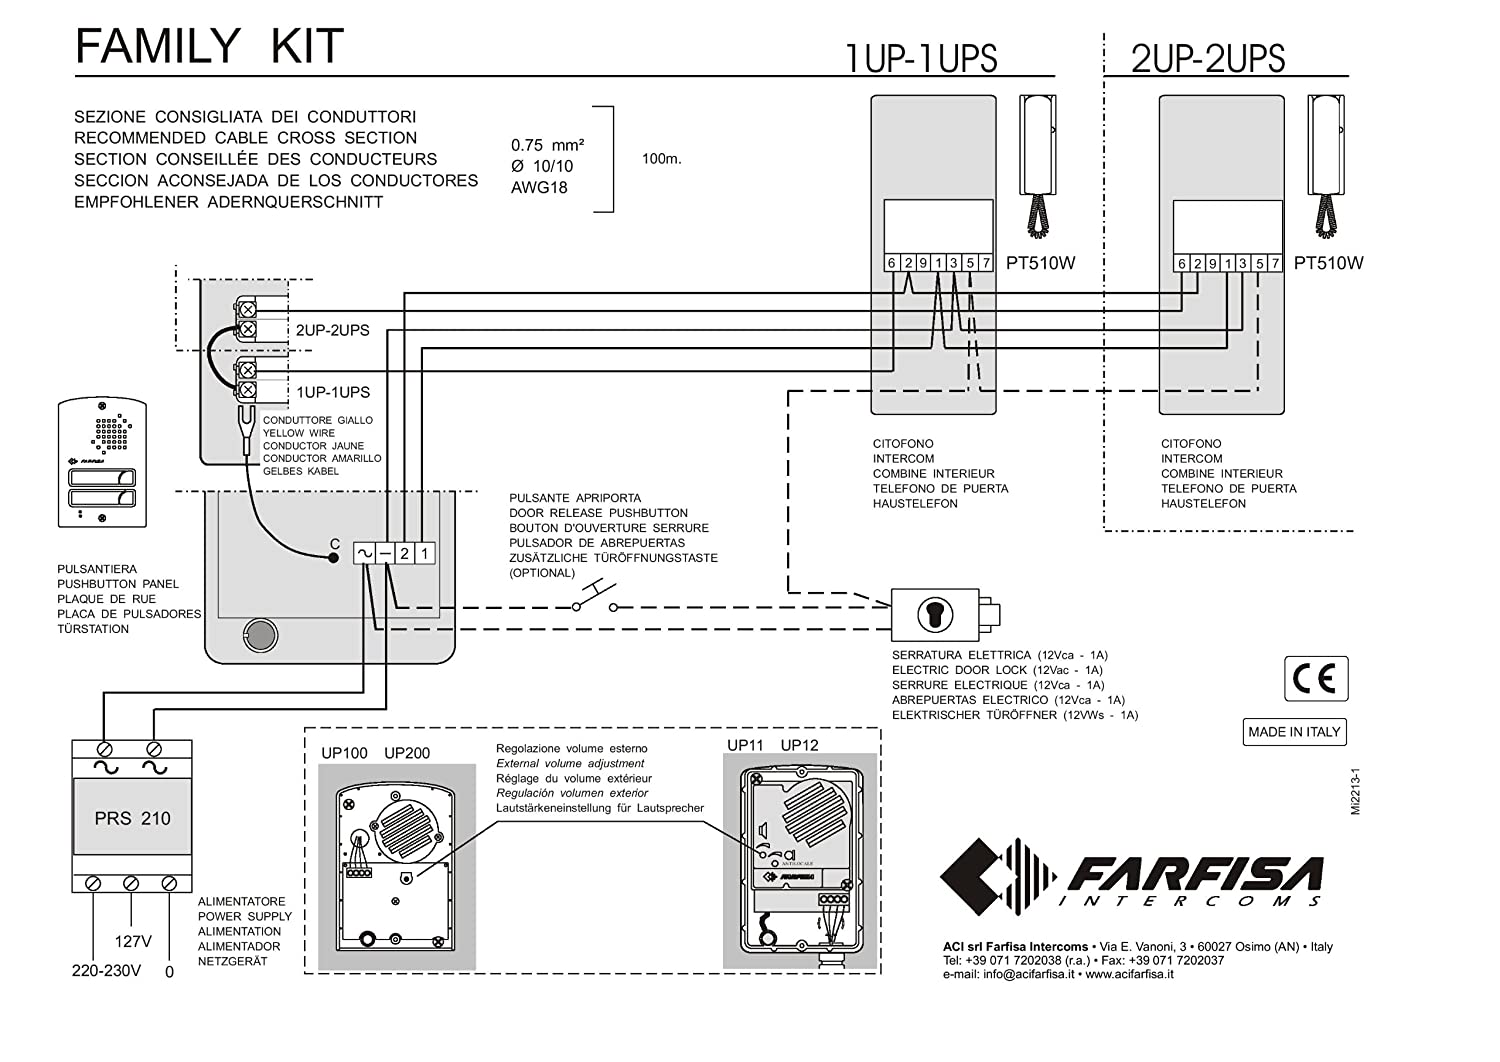 81VvKBixesL._SL1500_ amazon com o9n farfisa 1ups door entry audio intercom 2 way farfisa door entry wiring diagrams at bakdesigns.co